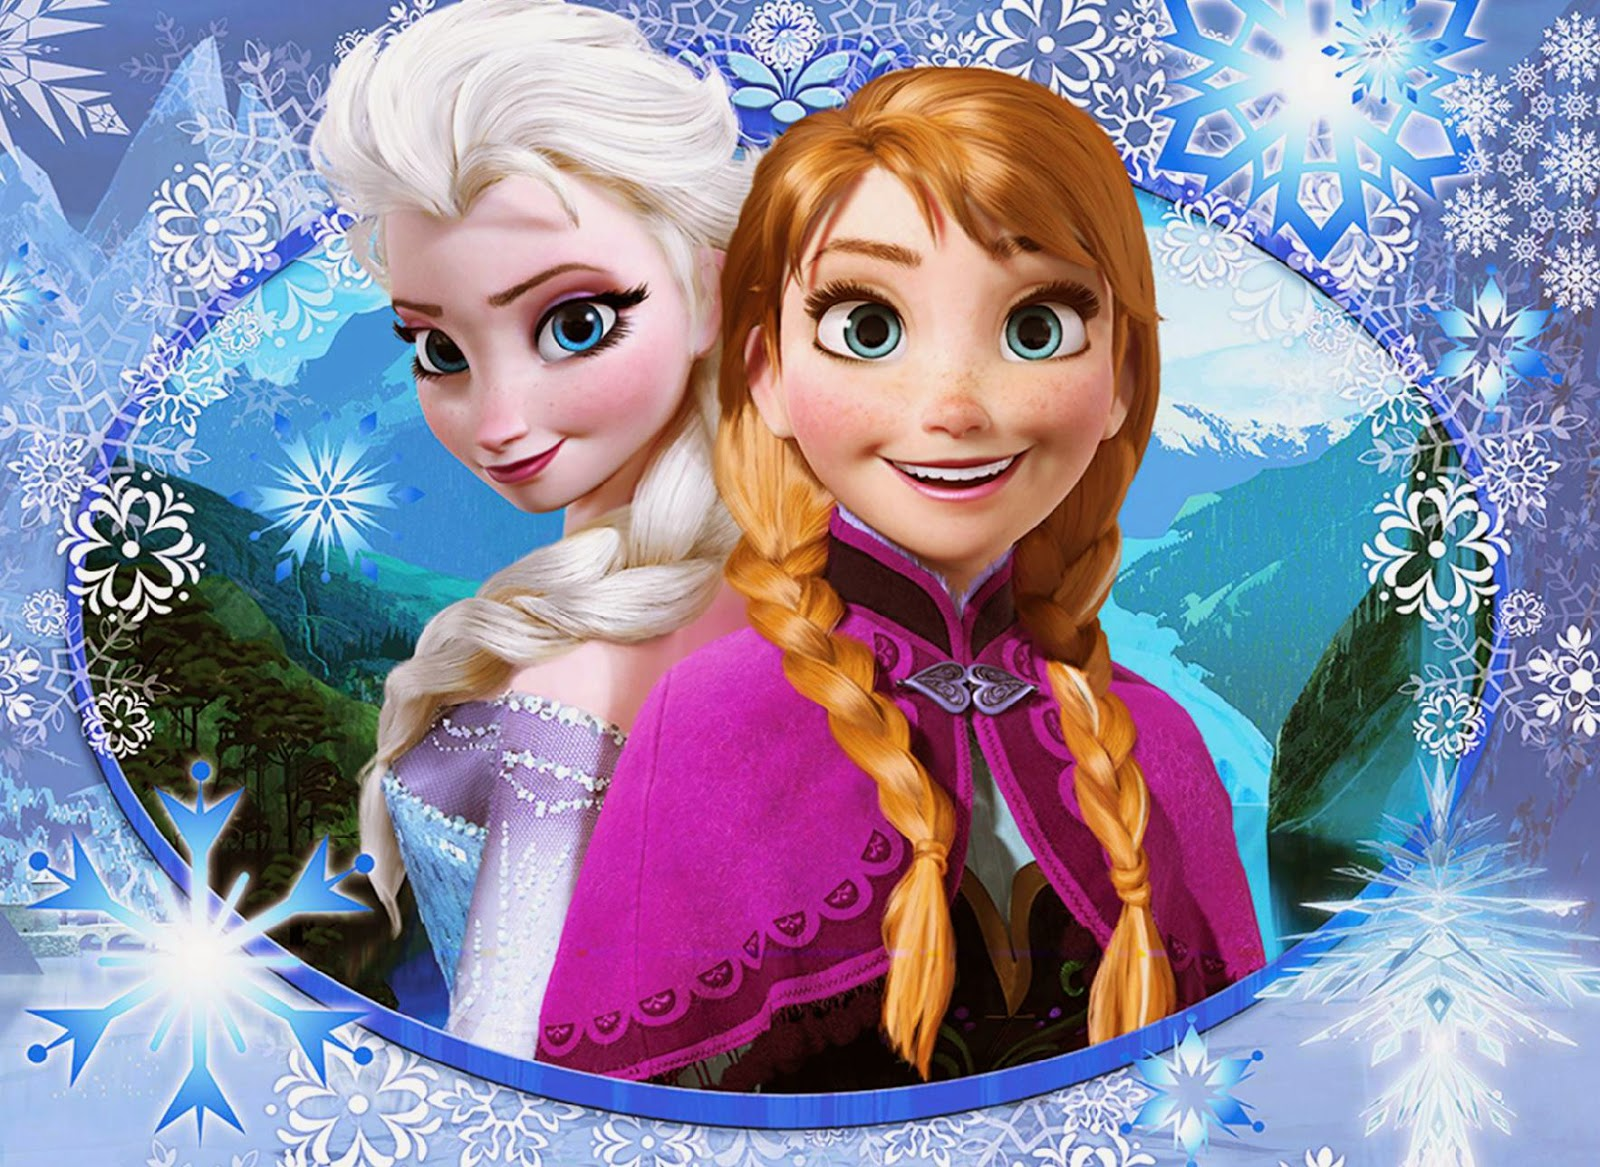 Frozen fever wallpaper hd gambar lucu terbaru cartoon - Frozen cartoon wallpaper ...